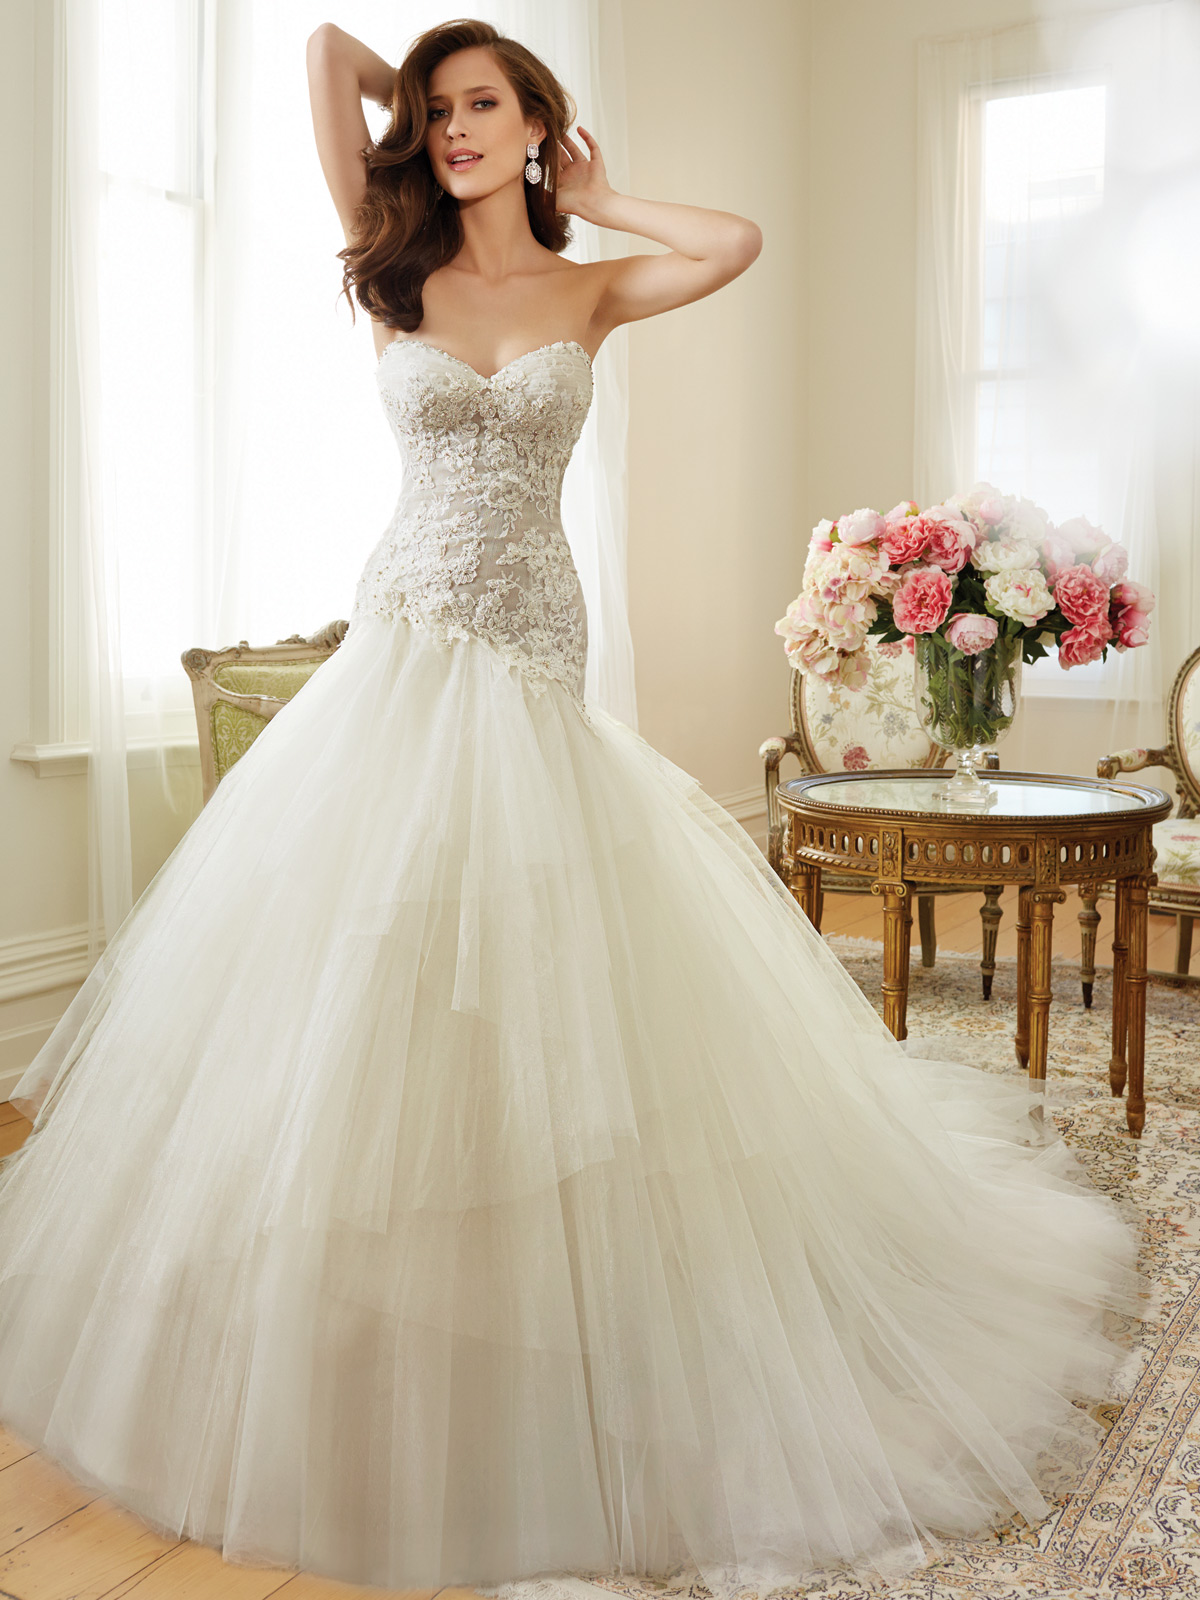 Wedding Dresses To Buy In Johannesburg